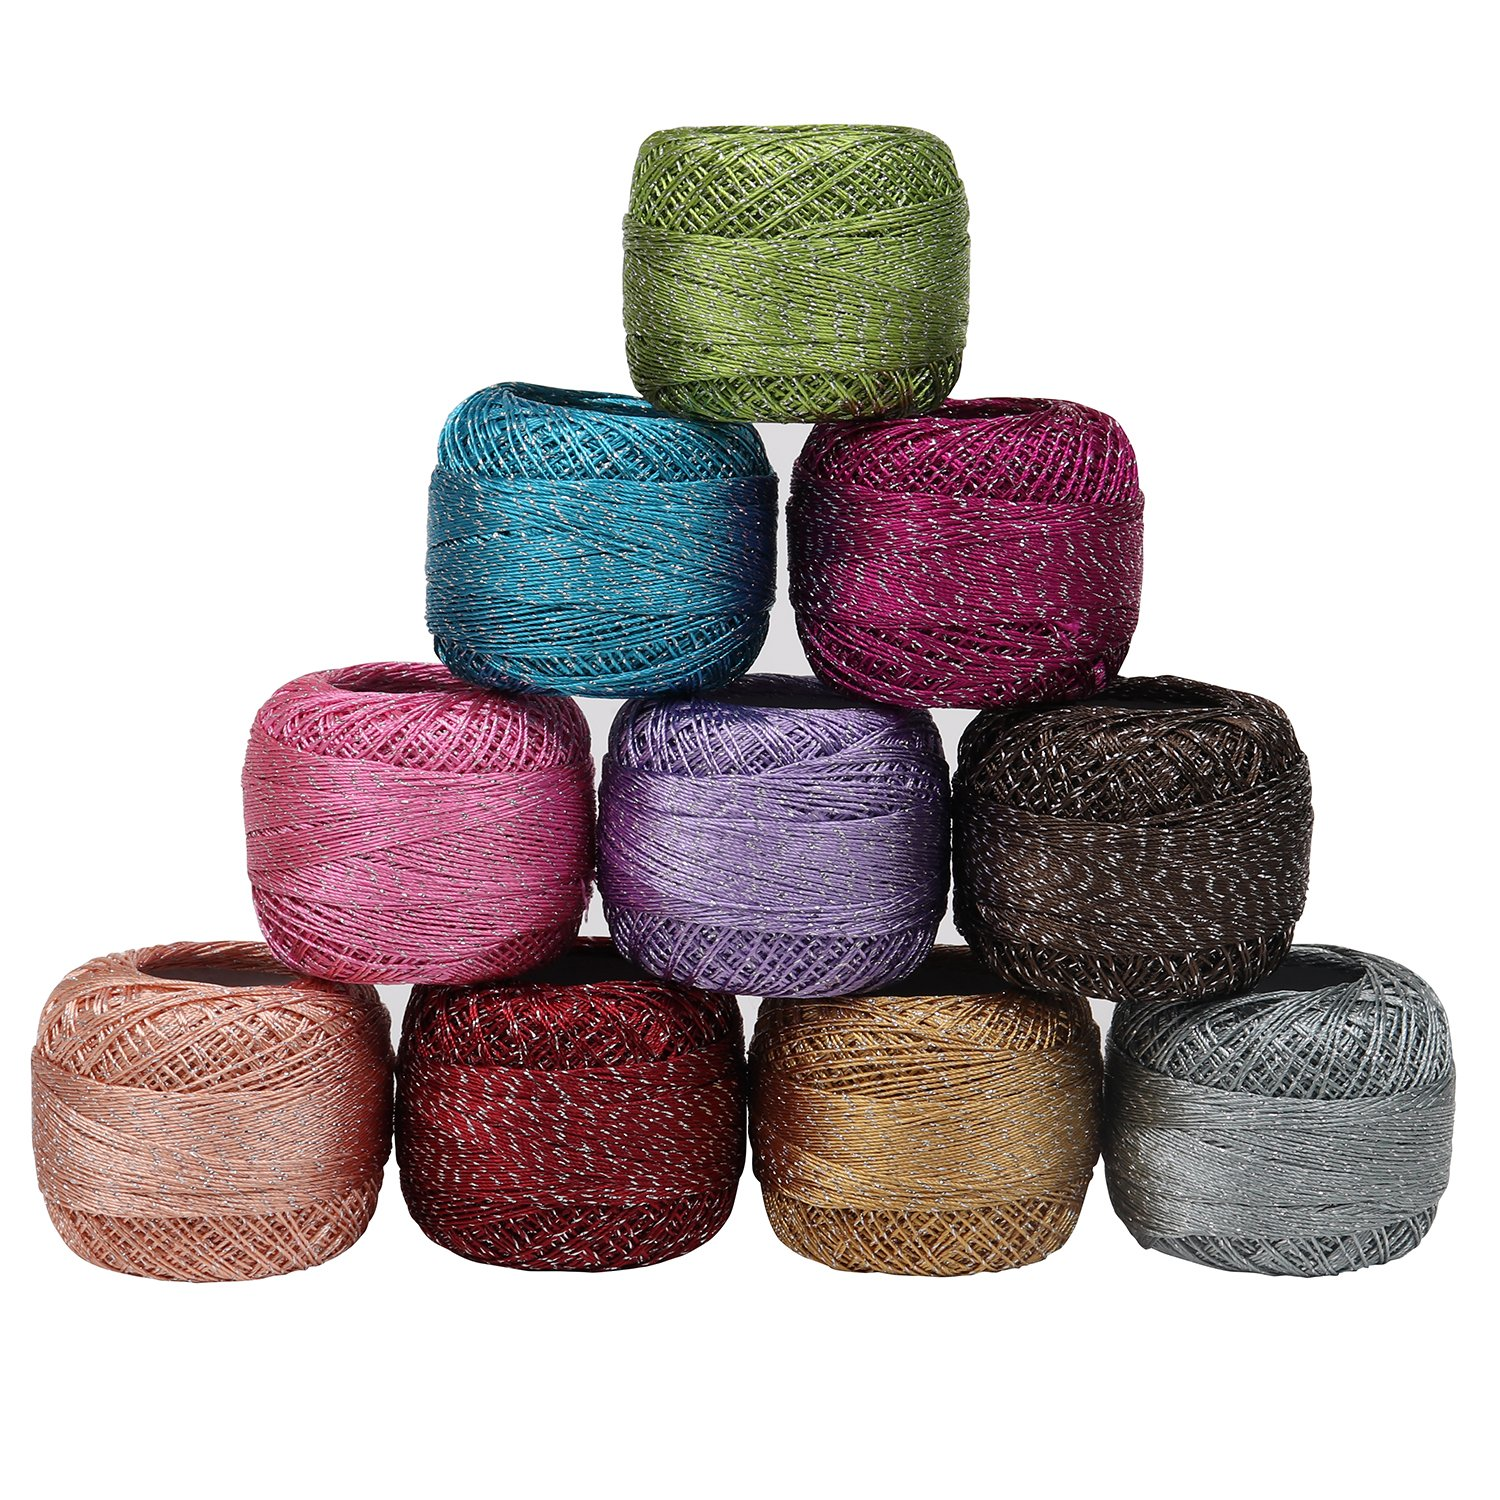 10 x Sparkly Colourful Glitter Cotton Crochet Thread Set by Curtzy - 92.95 Yards Crafts Knitting Yarn Lace Flowers Skein Skeins Balls - 929.50 Yards Total - Ideal for Beginners or Crochet Enthusiasts Kurtzy WO-646